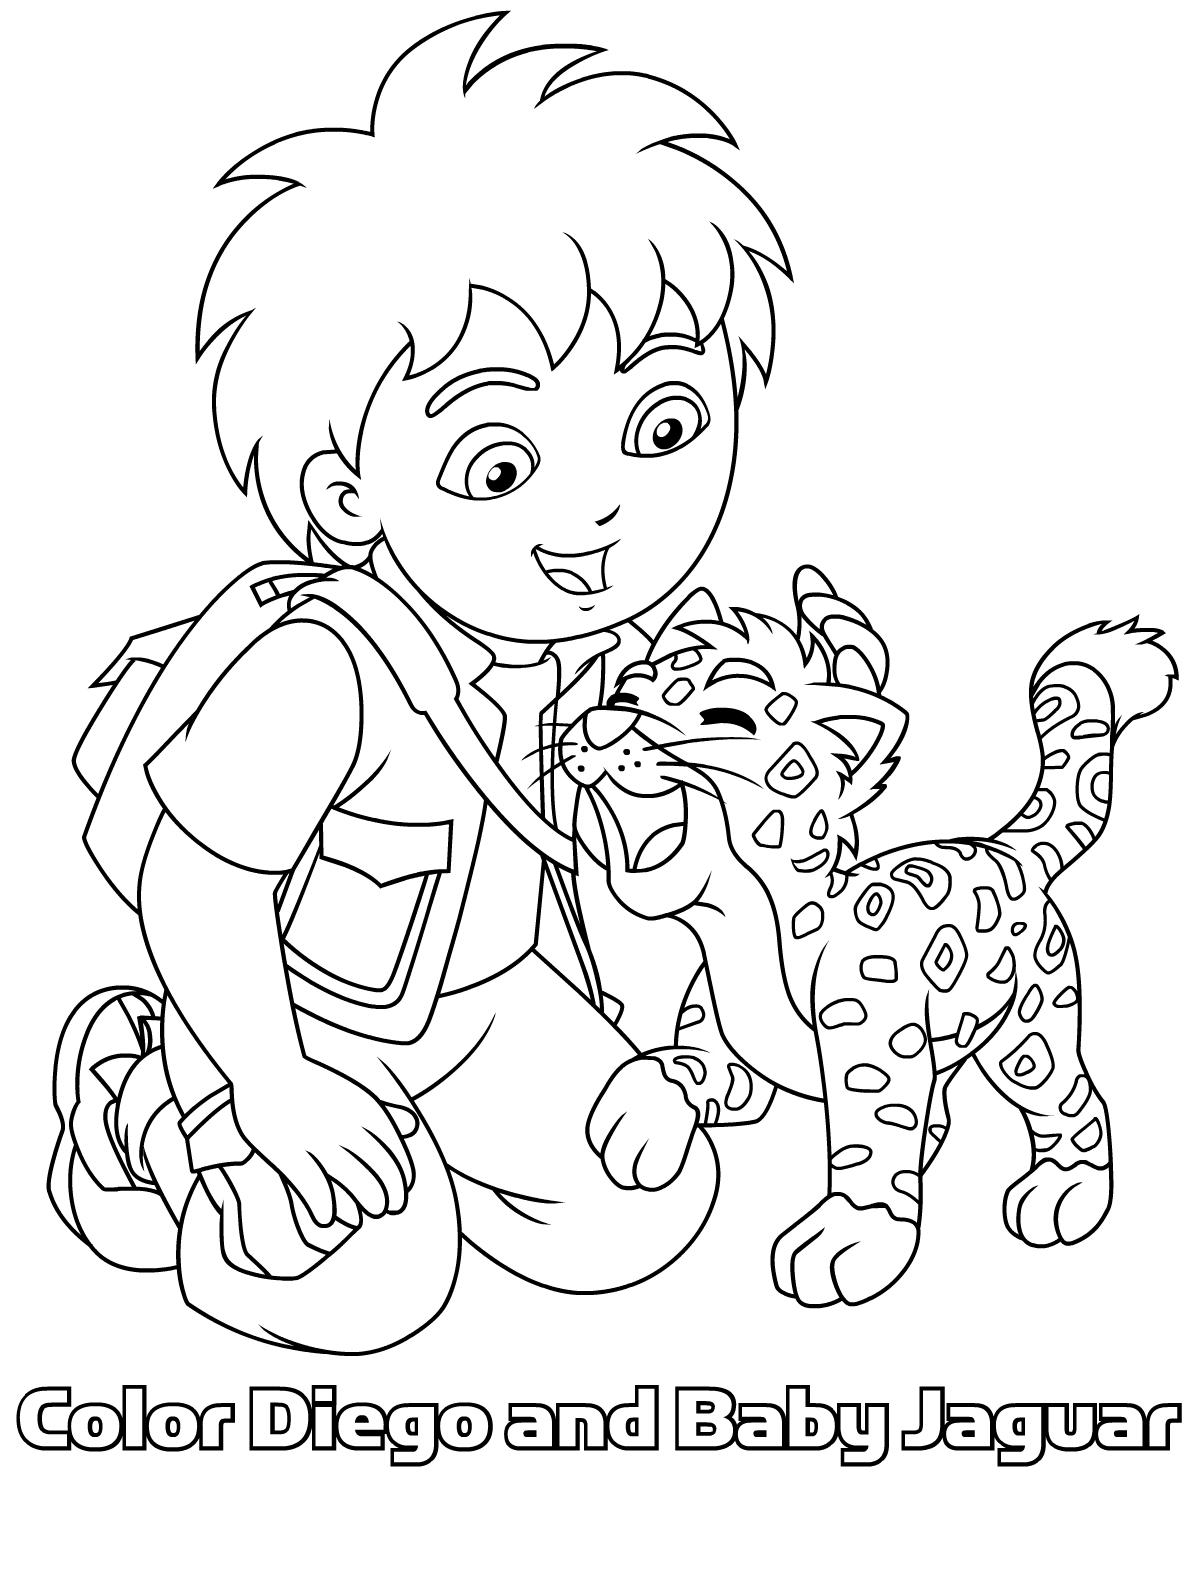 Free Printable Diego Coloring Pages For Kids Free Coloring Page Printables